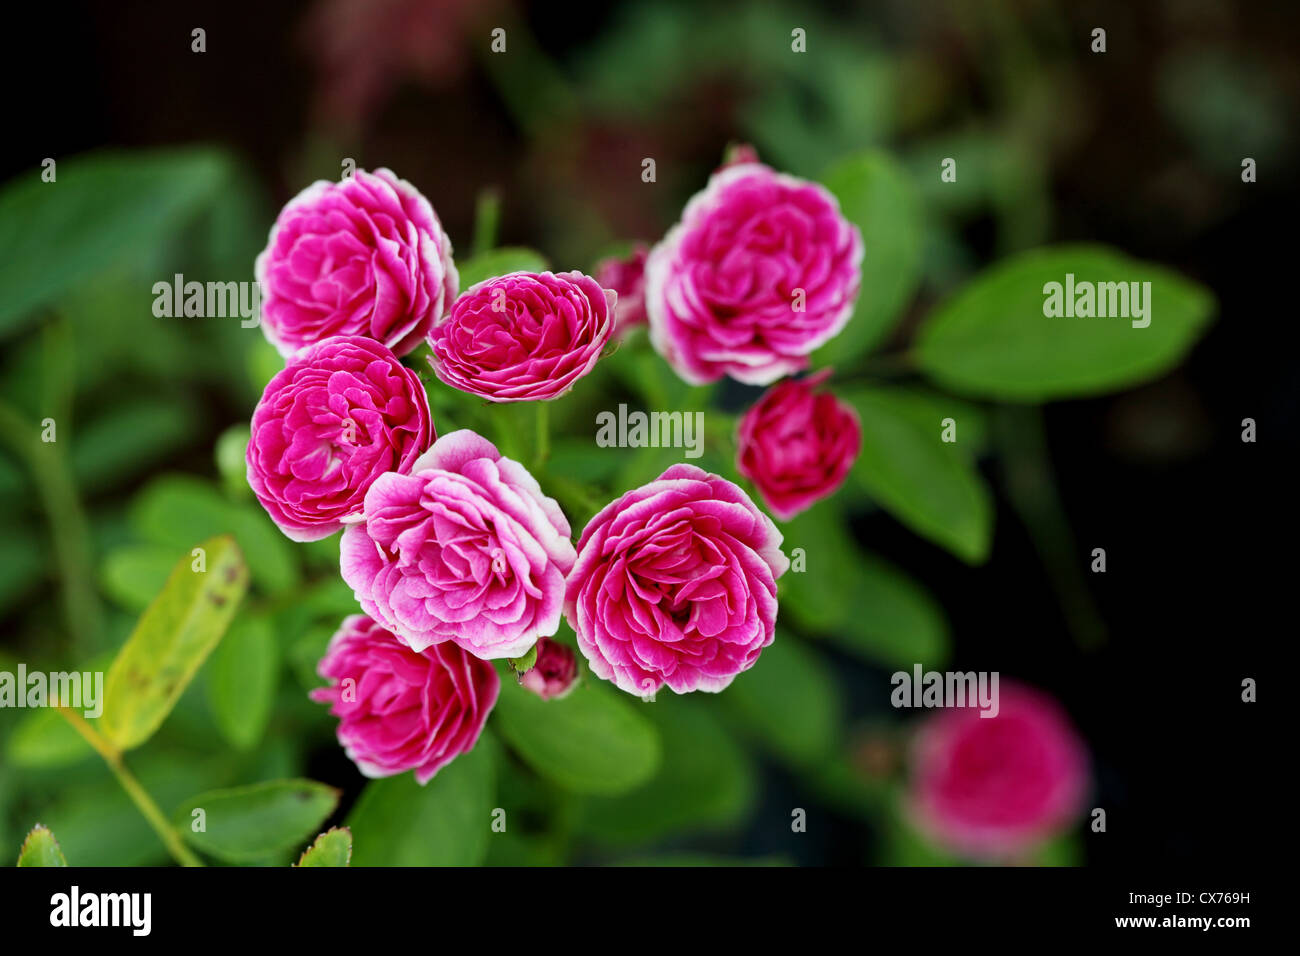 Bunch of pink rose flowers in a garden - Stock Image